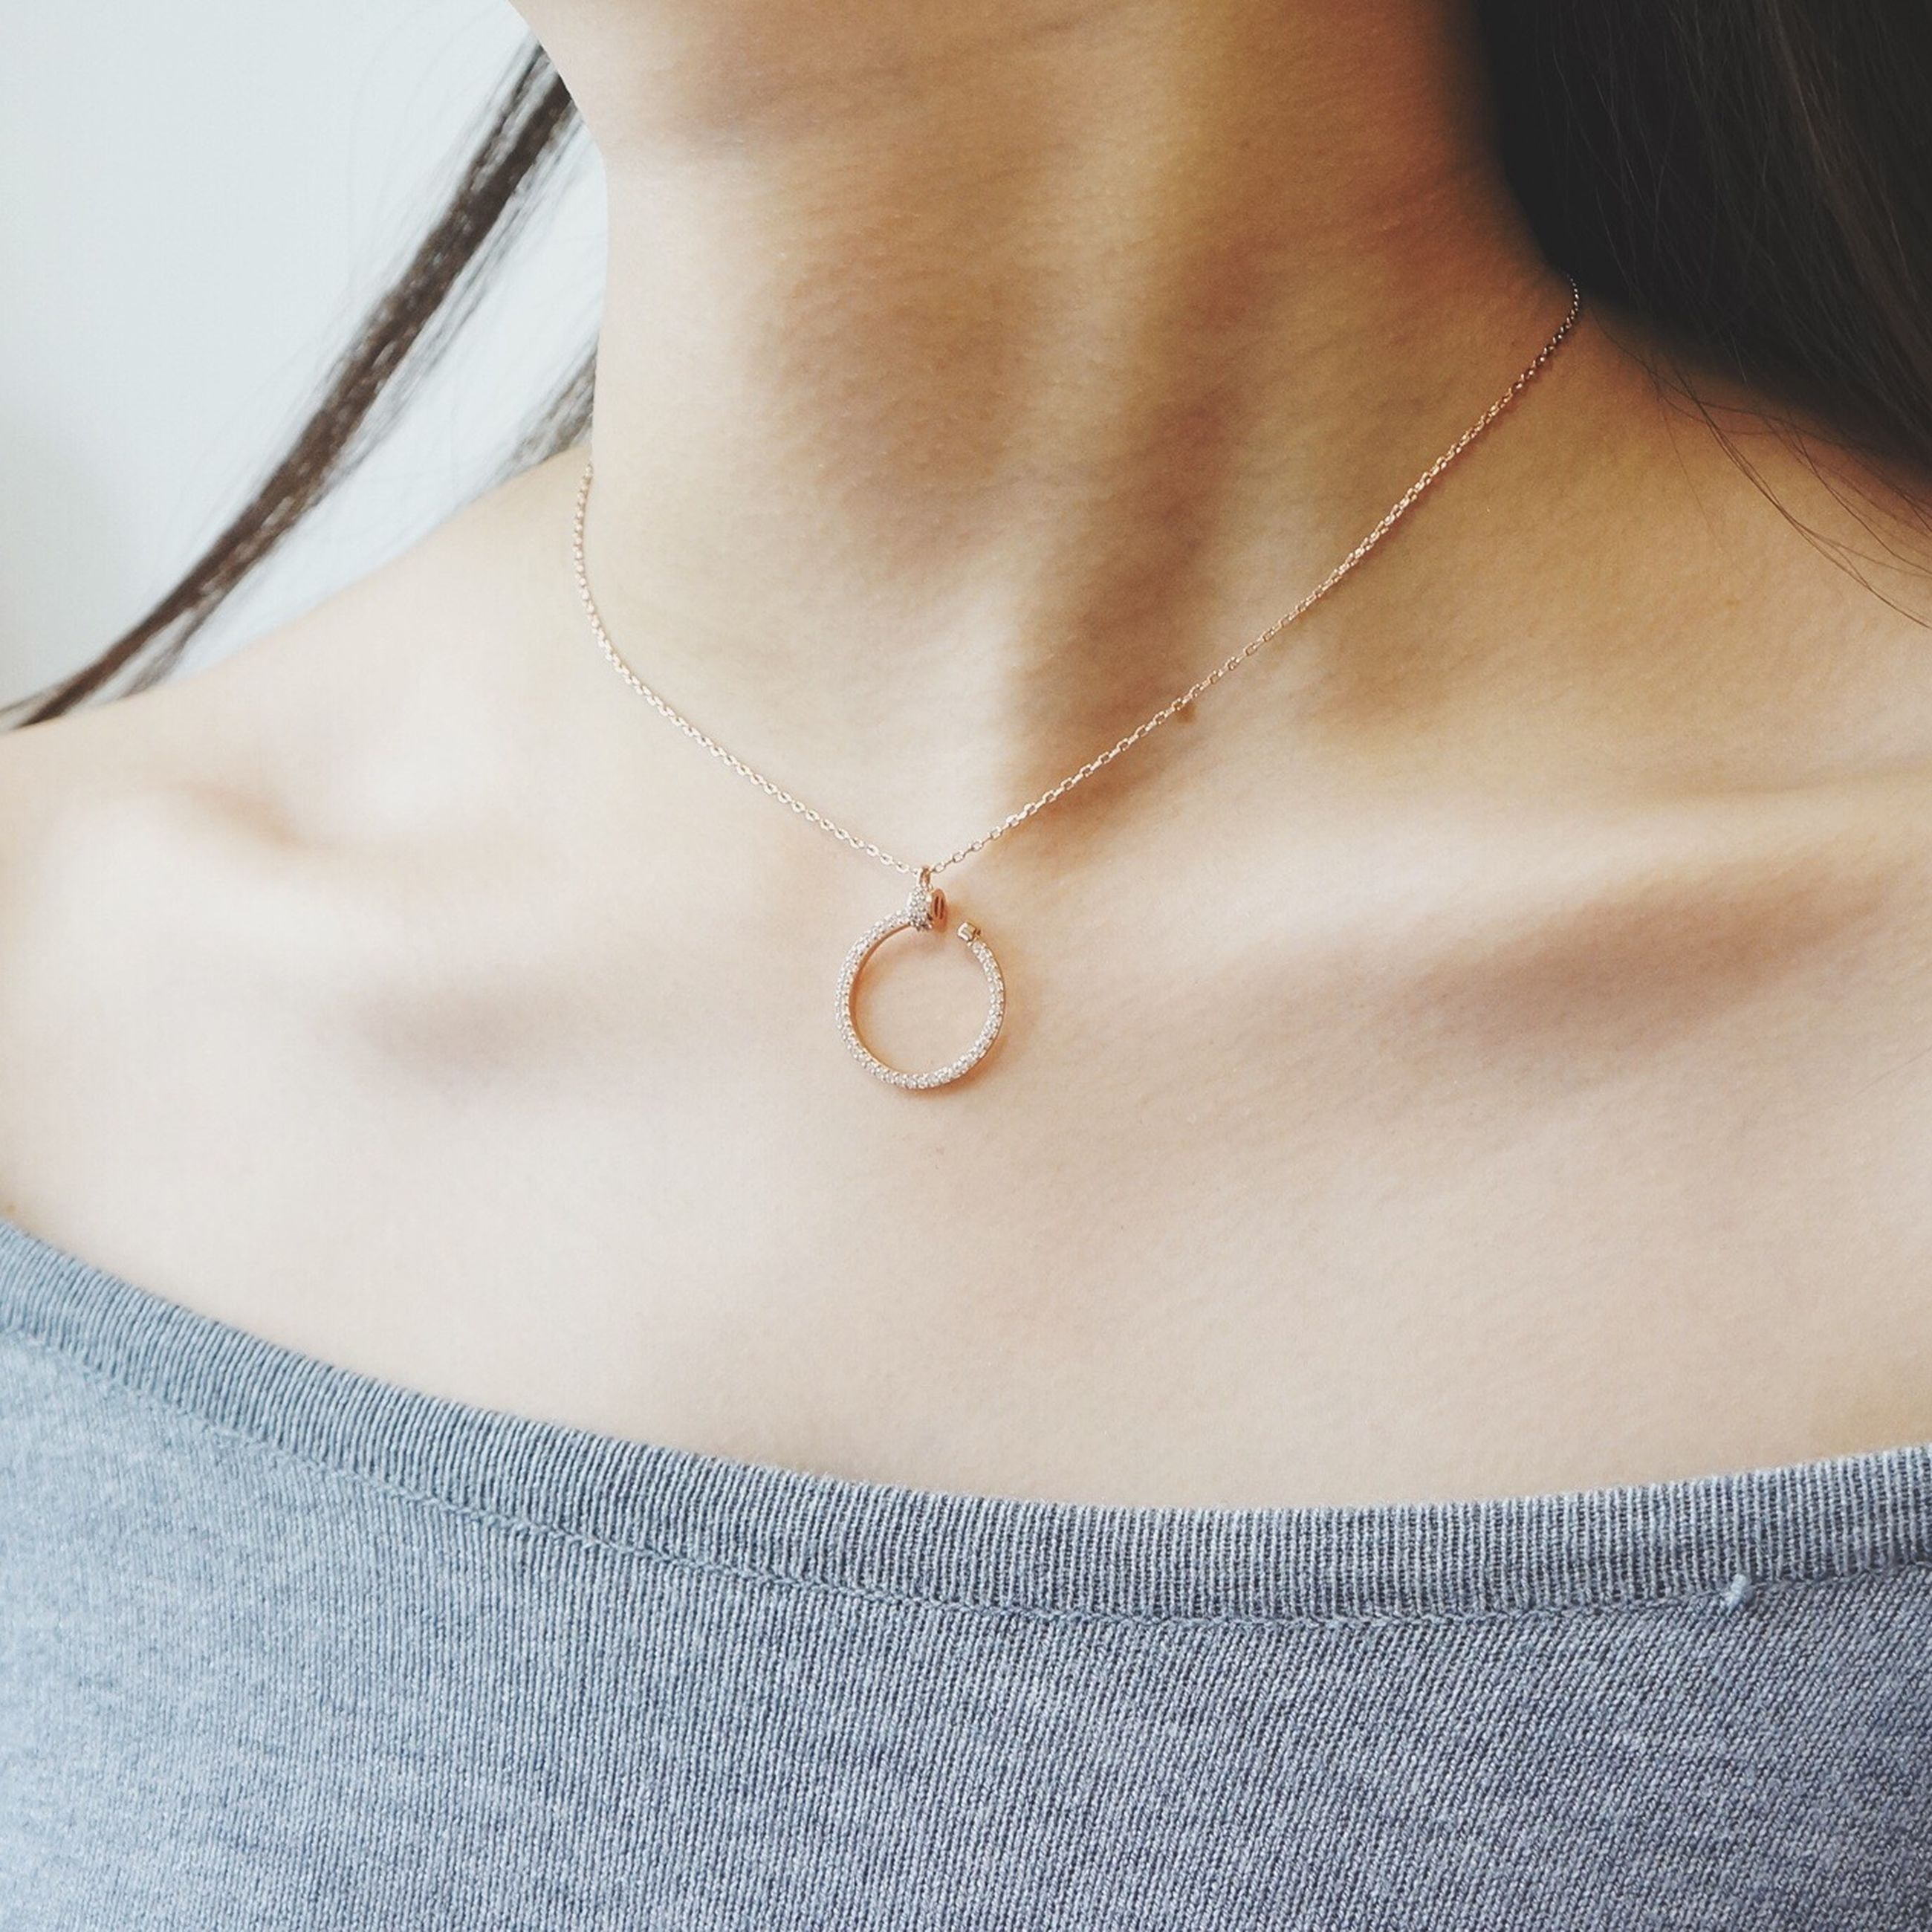 indoors, necklace, person, pendant